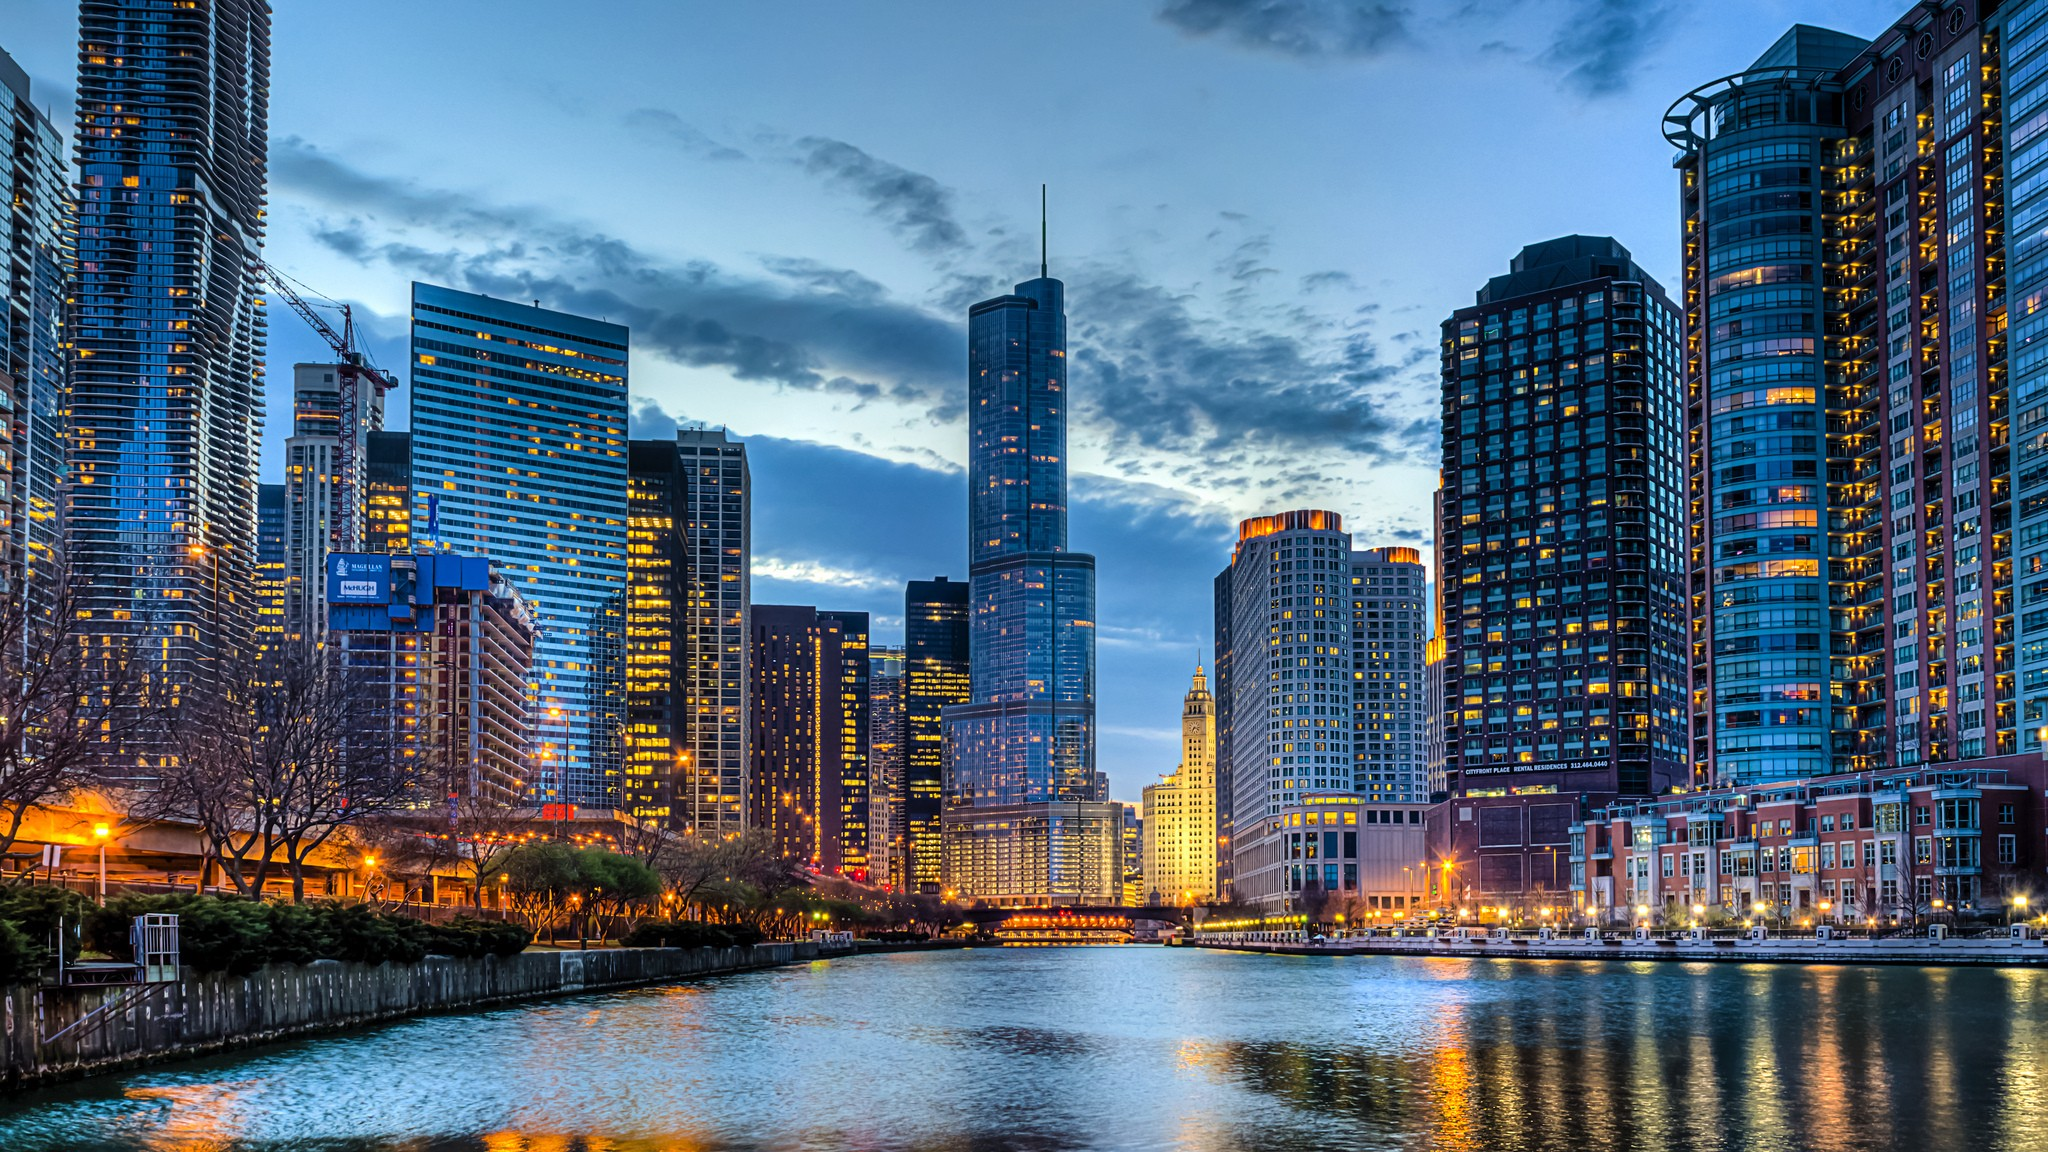 Chicago wallpaper ·① Download free awesome HD wallpapers ...